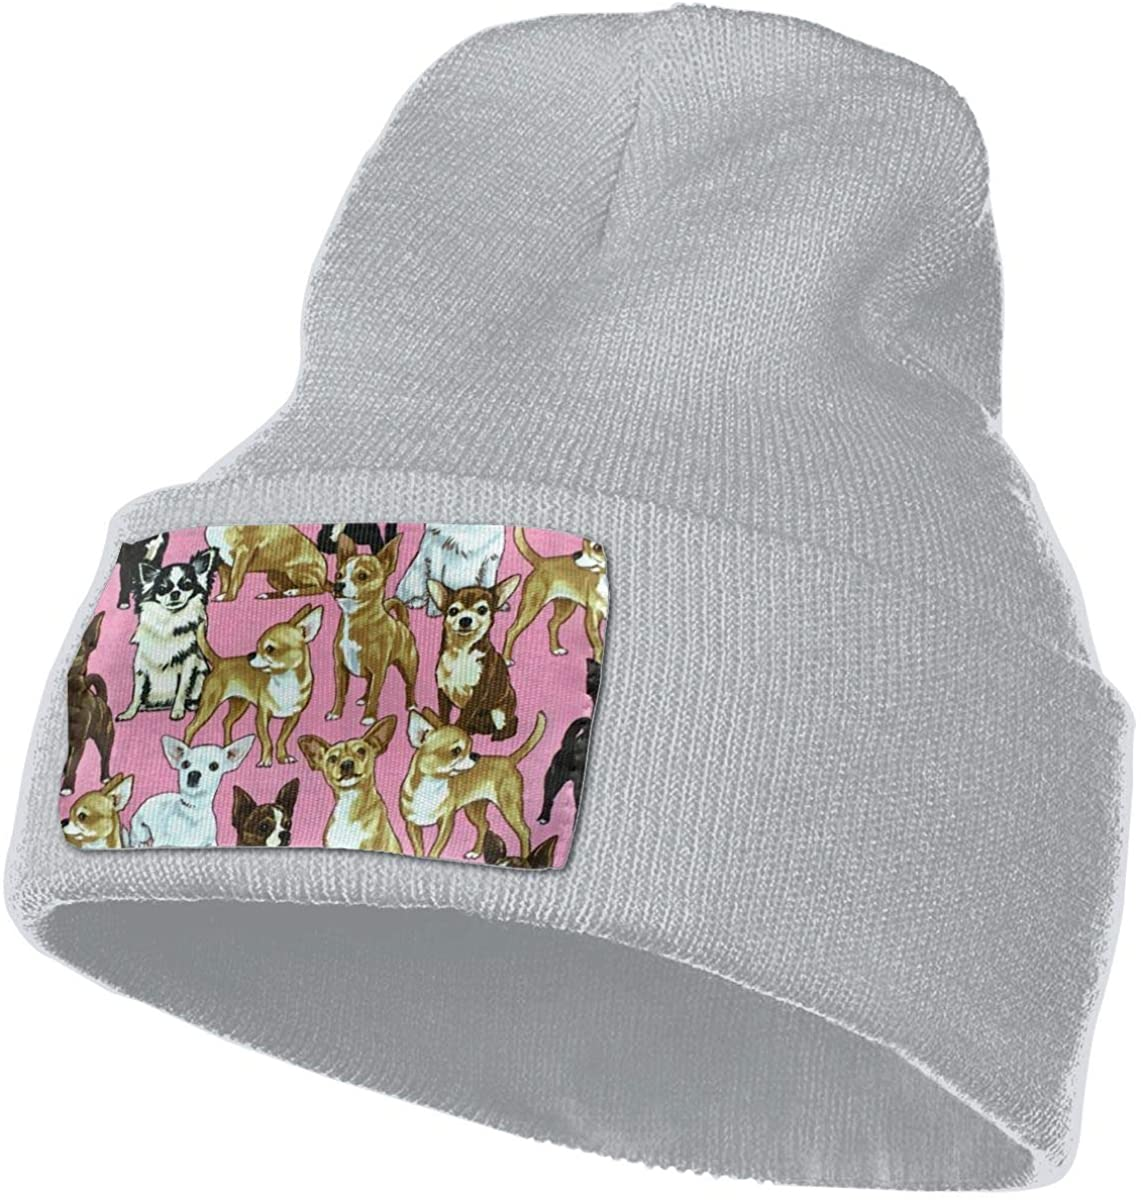 SOURCE POINT Unisex Beanie Hat Chiwawas Dog Pink Knit Hat Cap Skull Cap